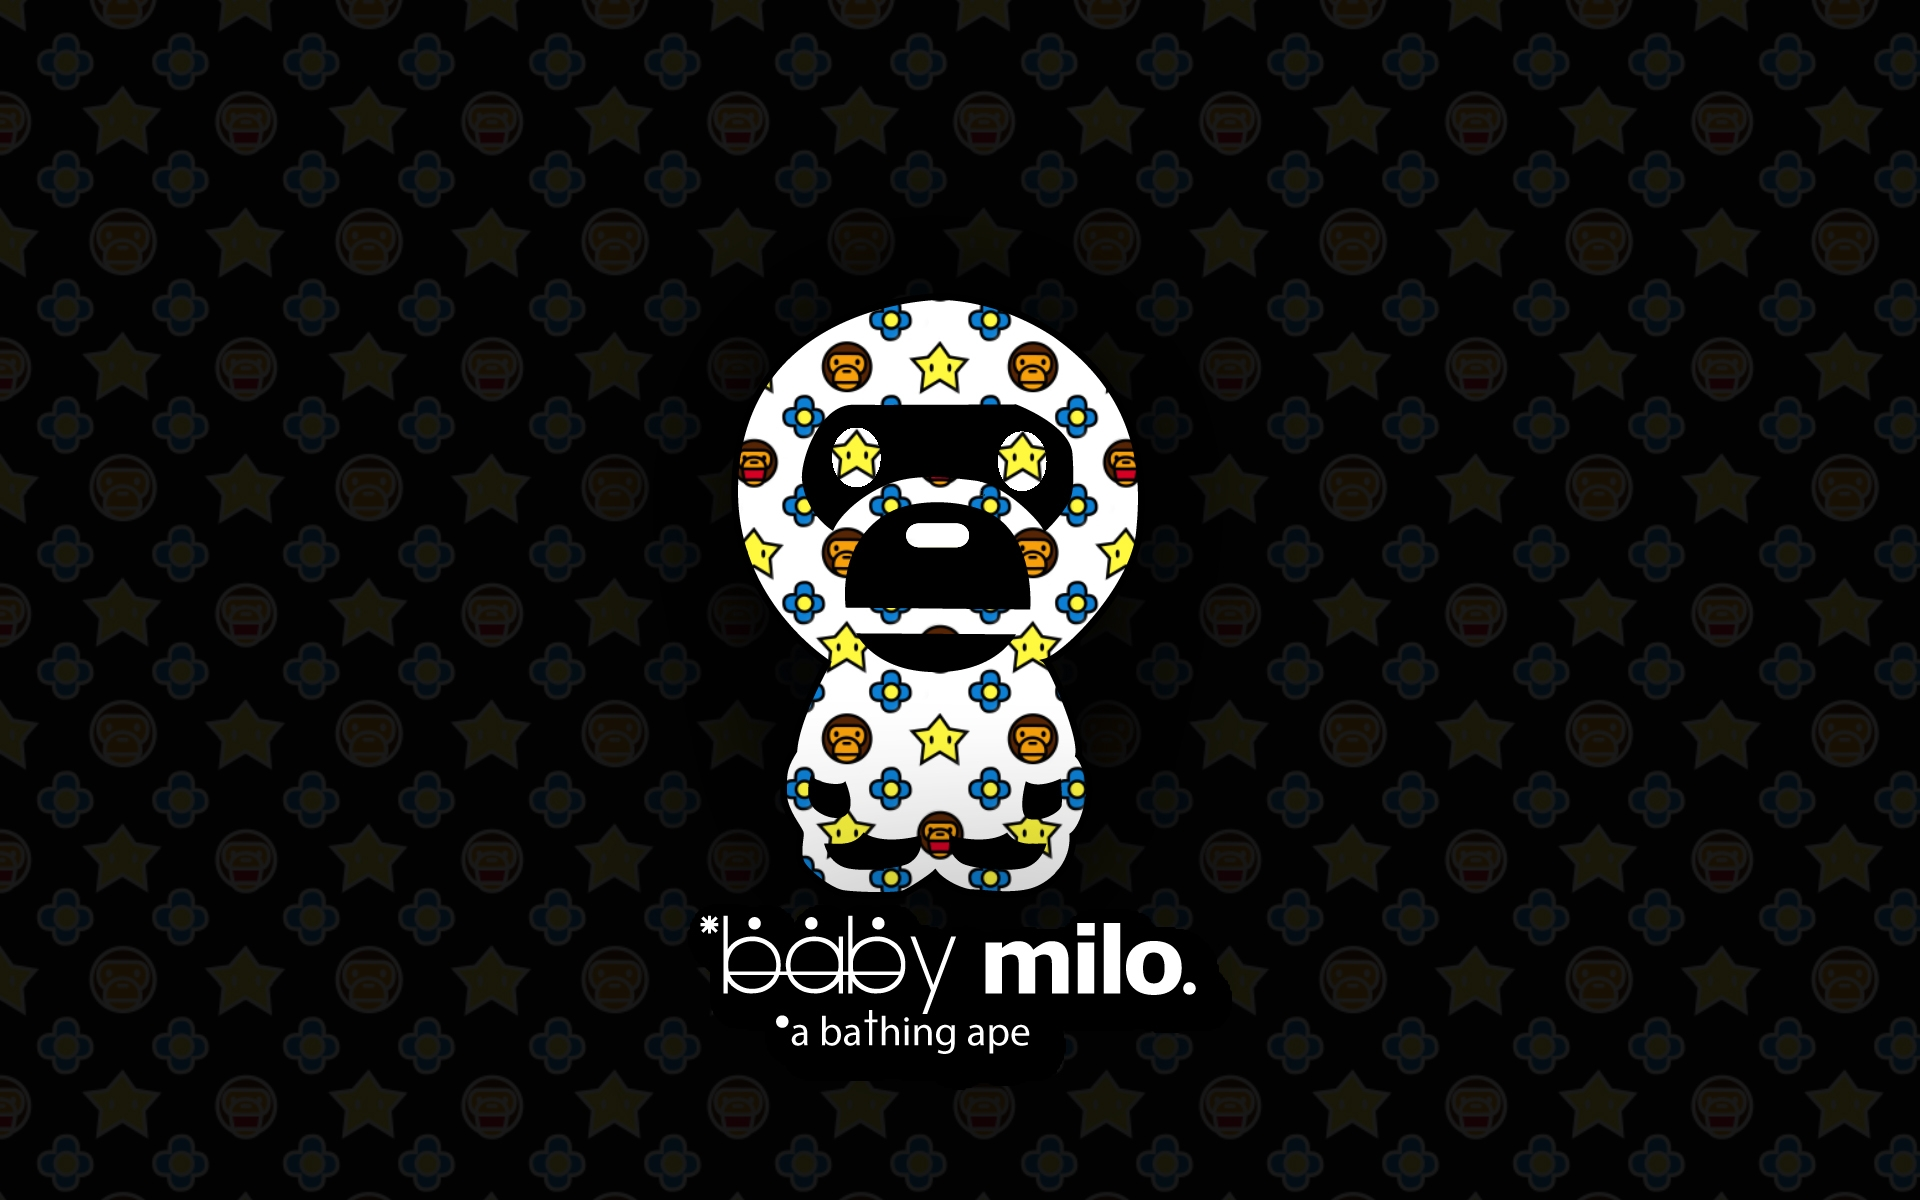 Baby Milo Logo Hd Wallpaper